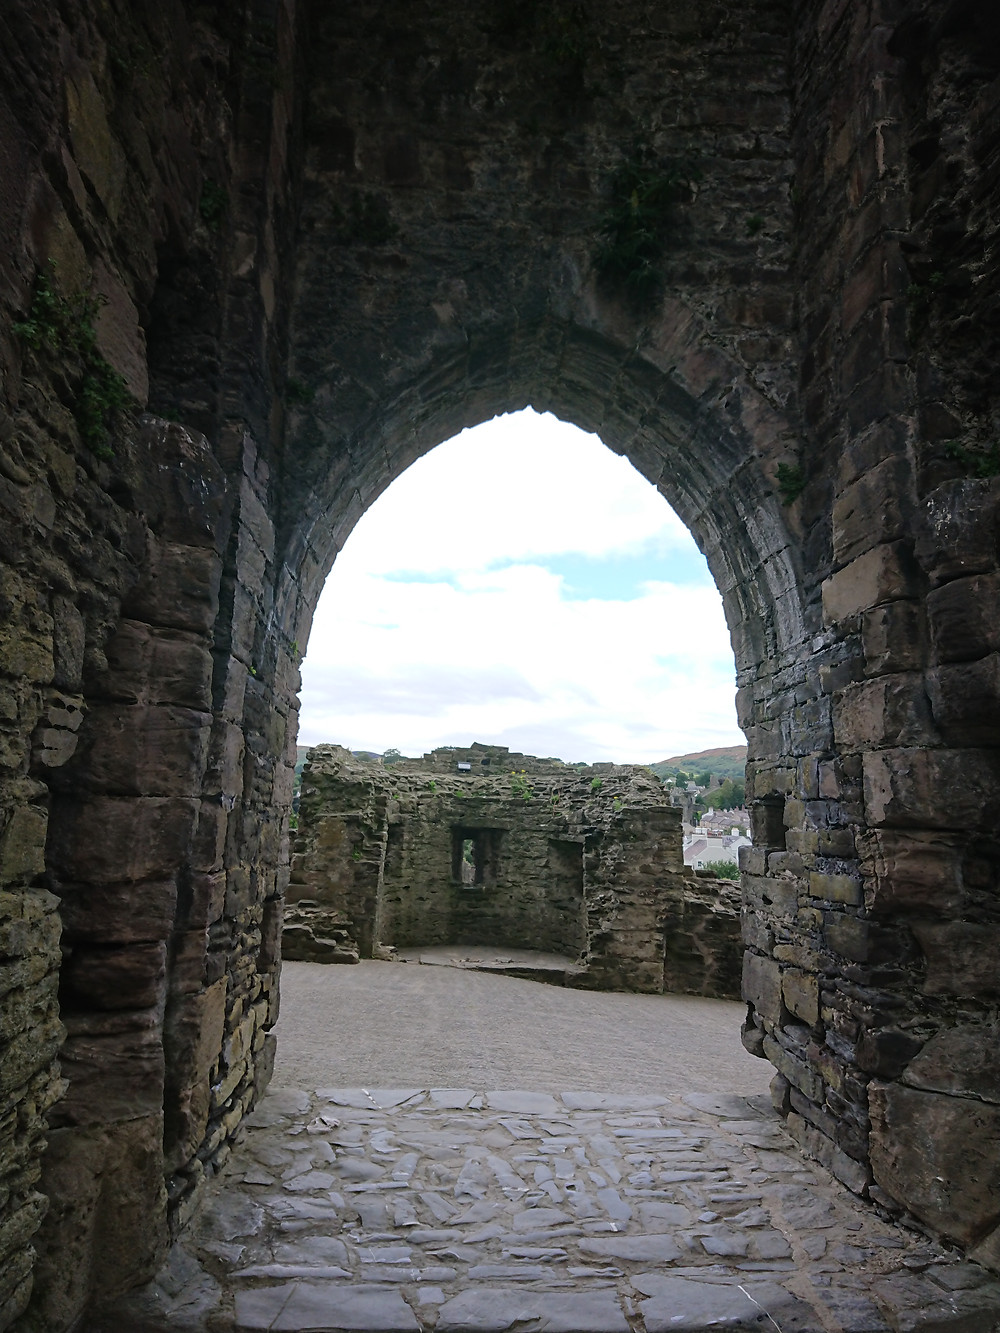 The main gate of Conwy castle, Conwy North Wales. The view of the West barbican can be seen, this was intended to protect the main gate. Built by King Edward I of England